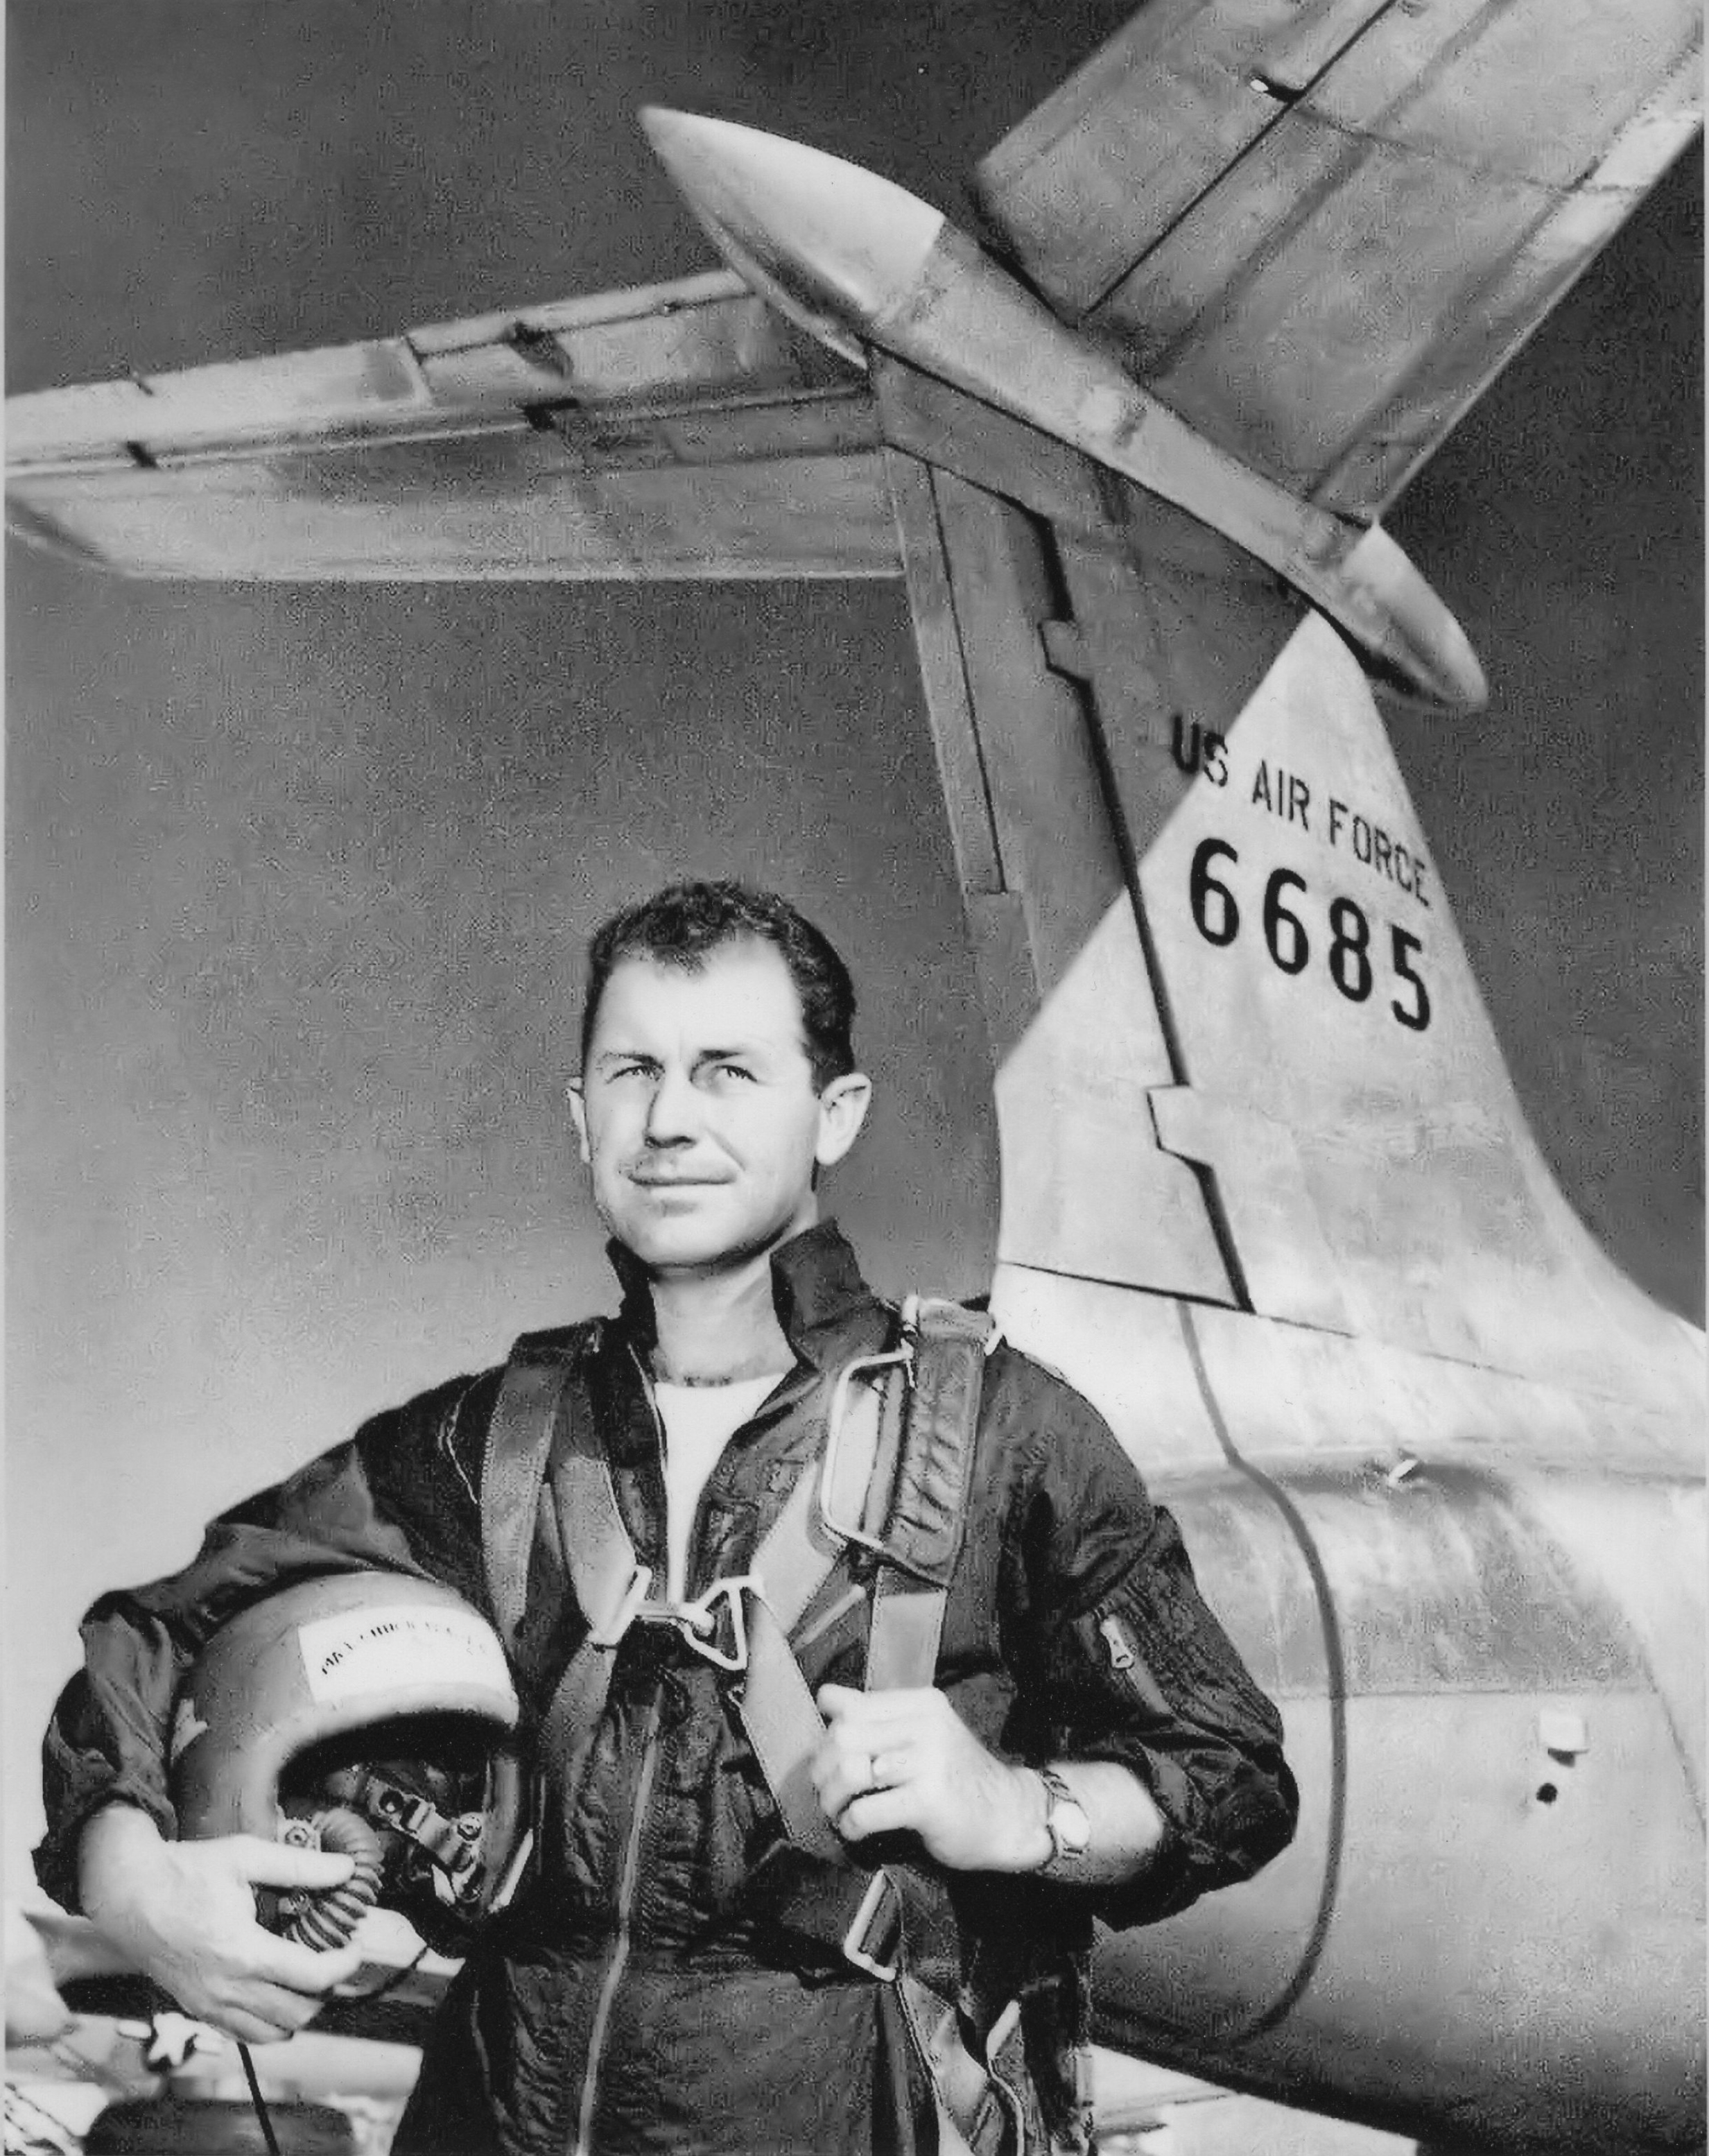 Communication on this topic: Life Advice from Chuck Yeager, life-advice-from-chuck-yeager/